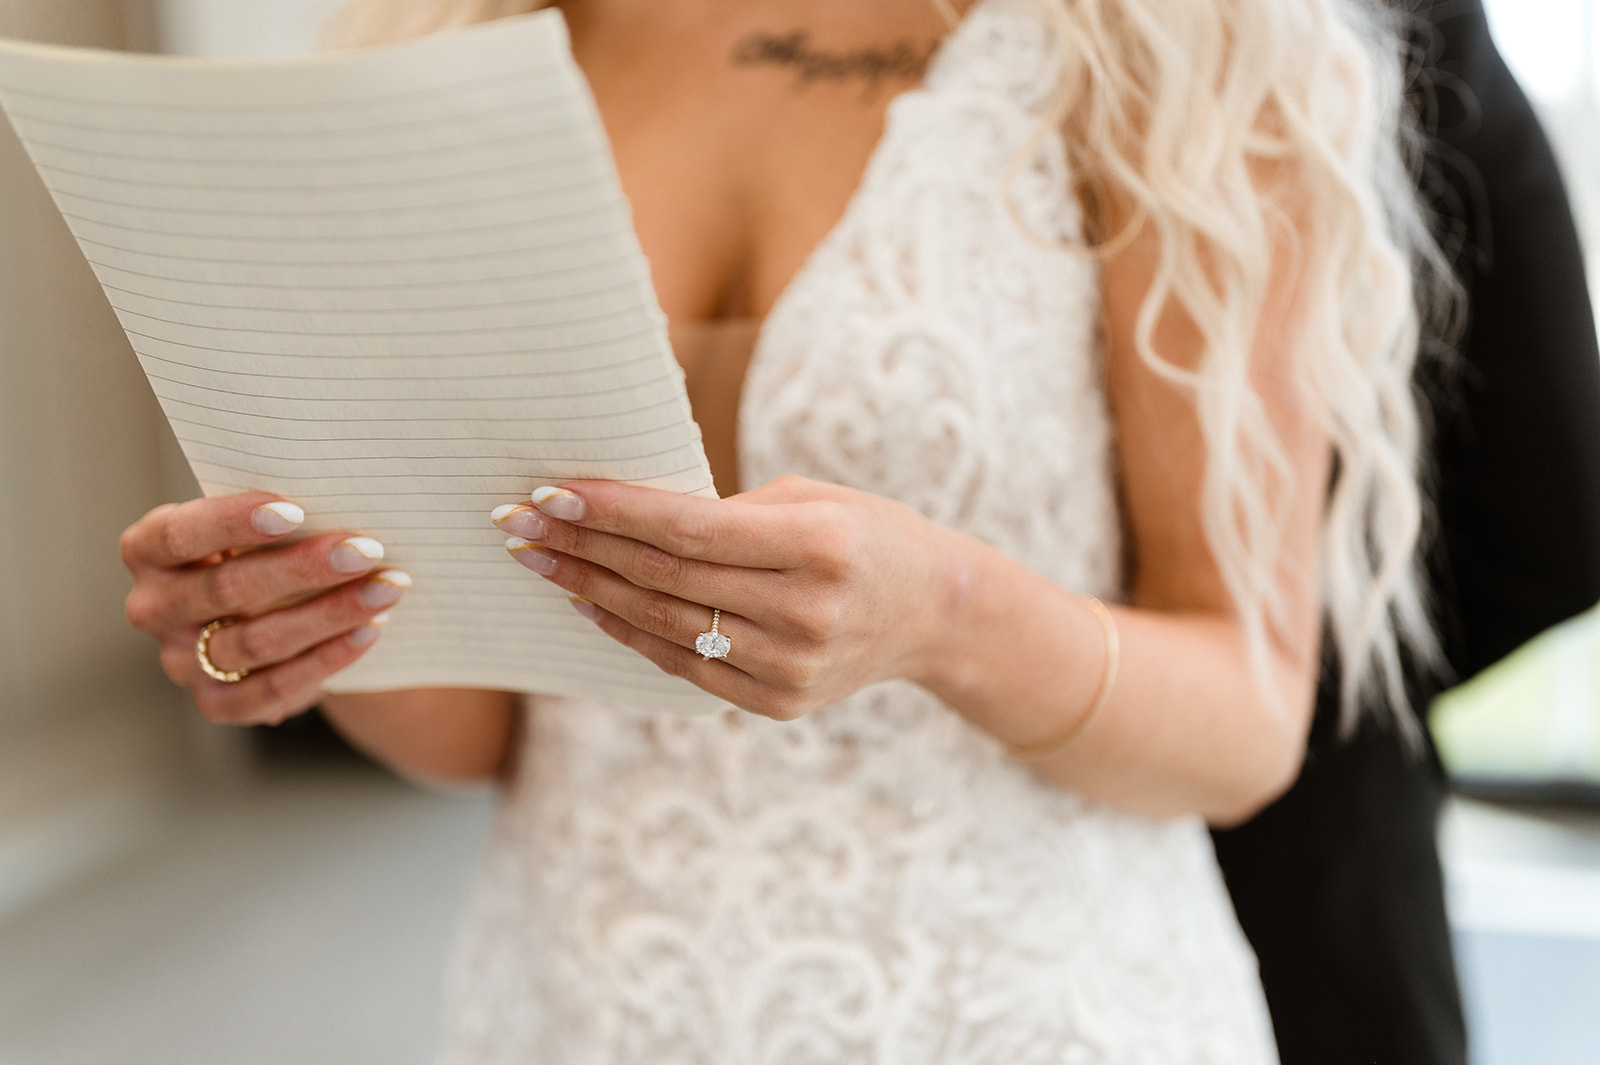 Brides read vows to each other